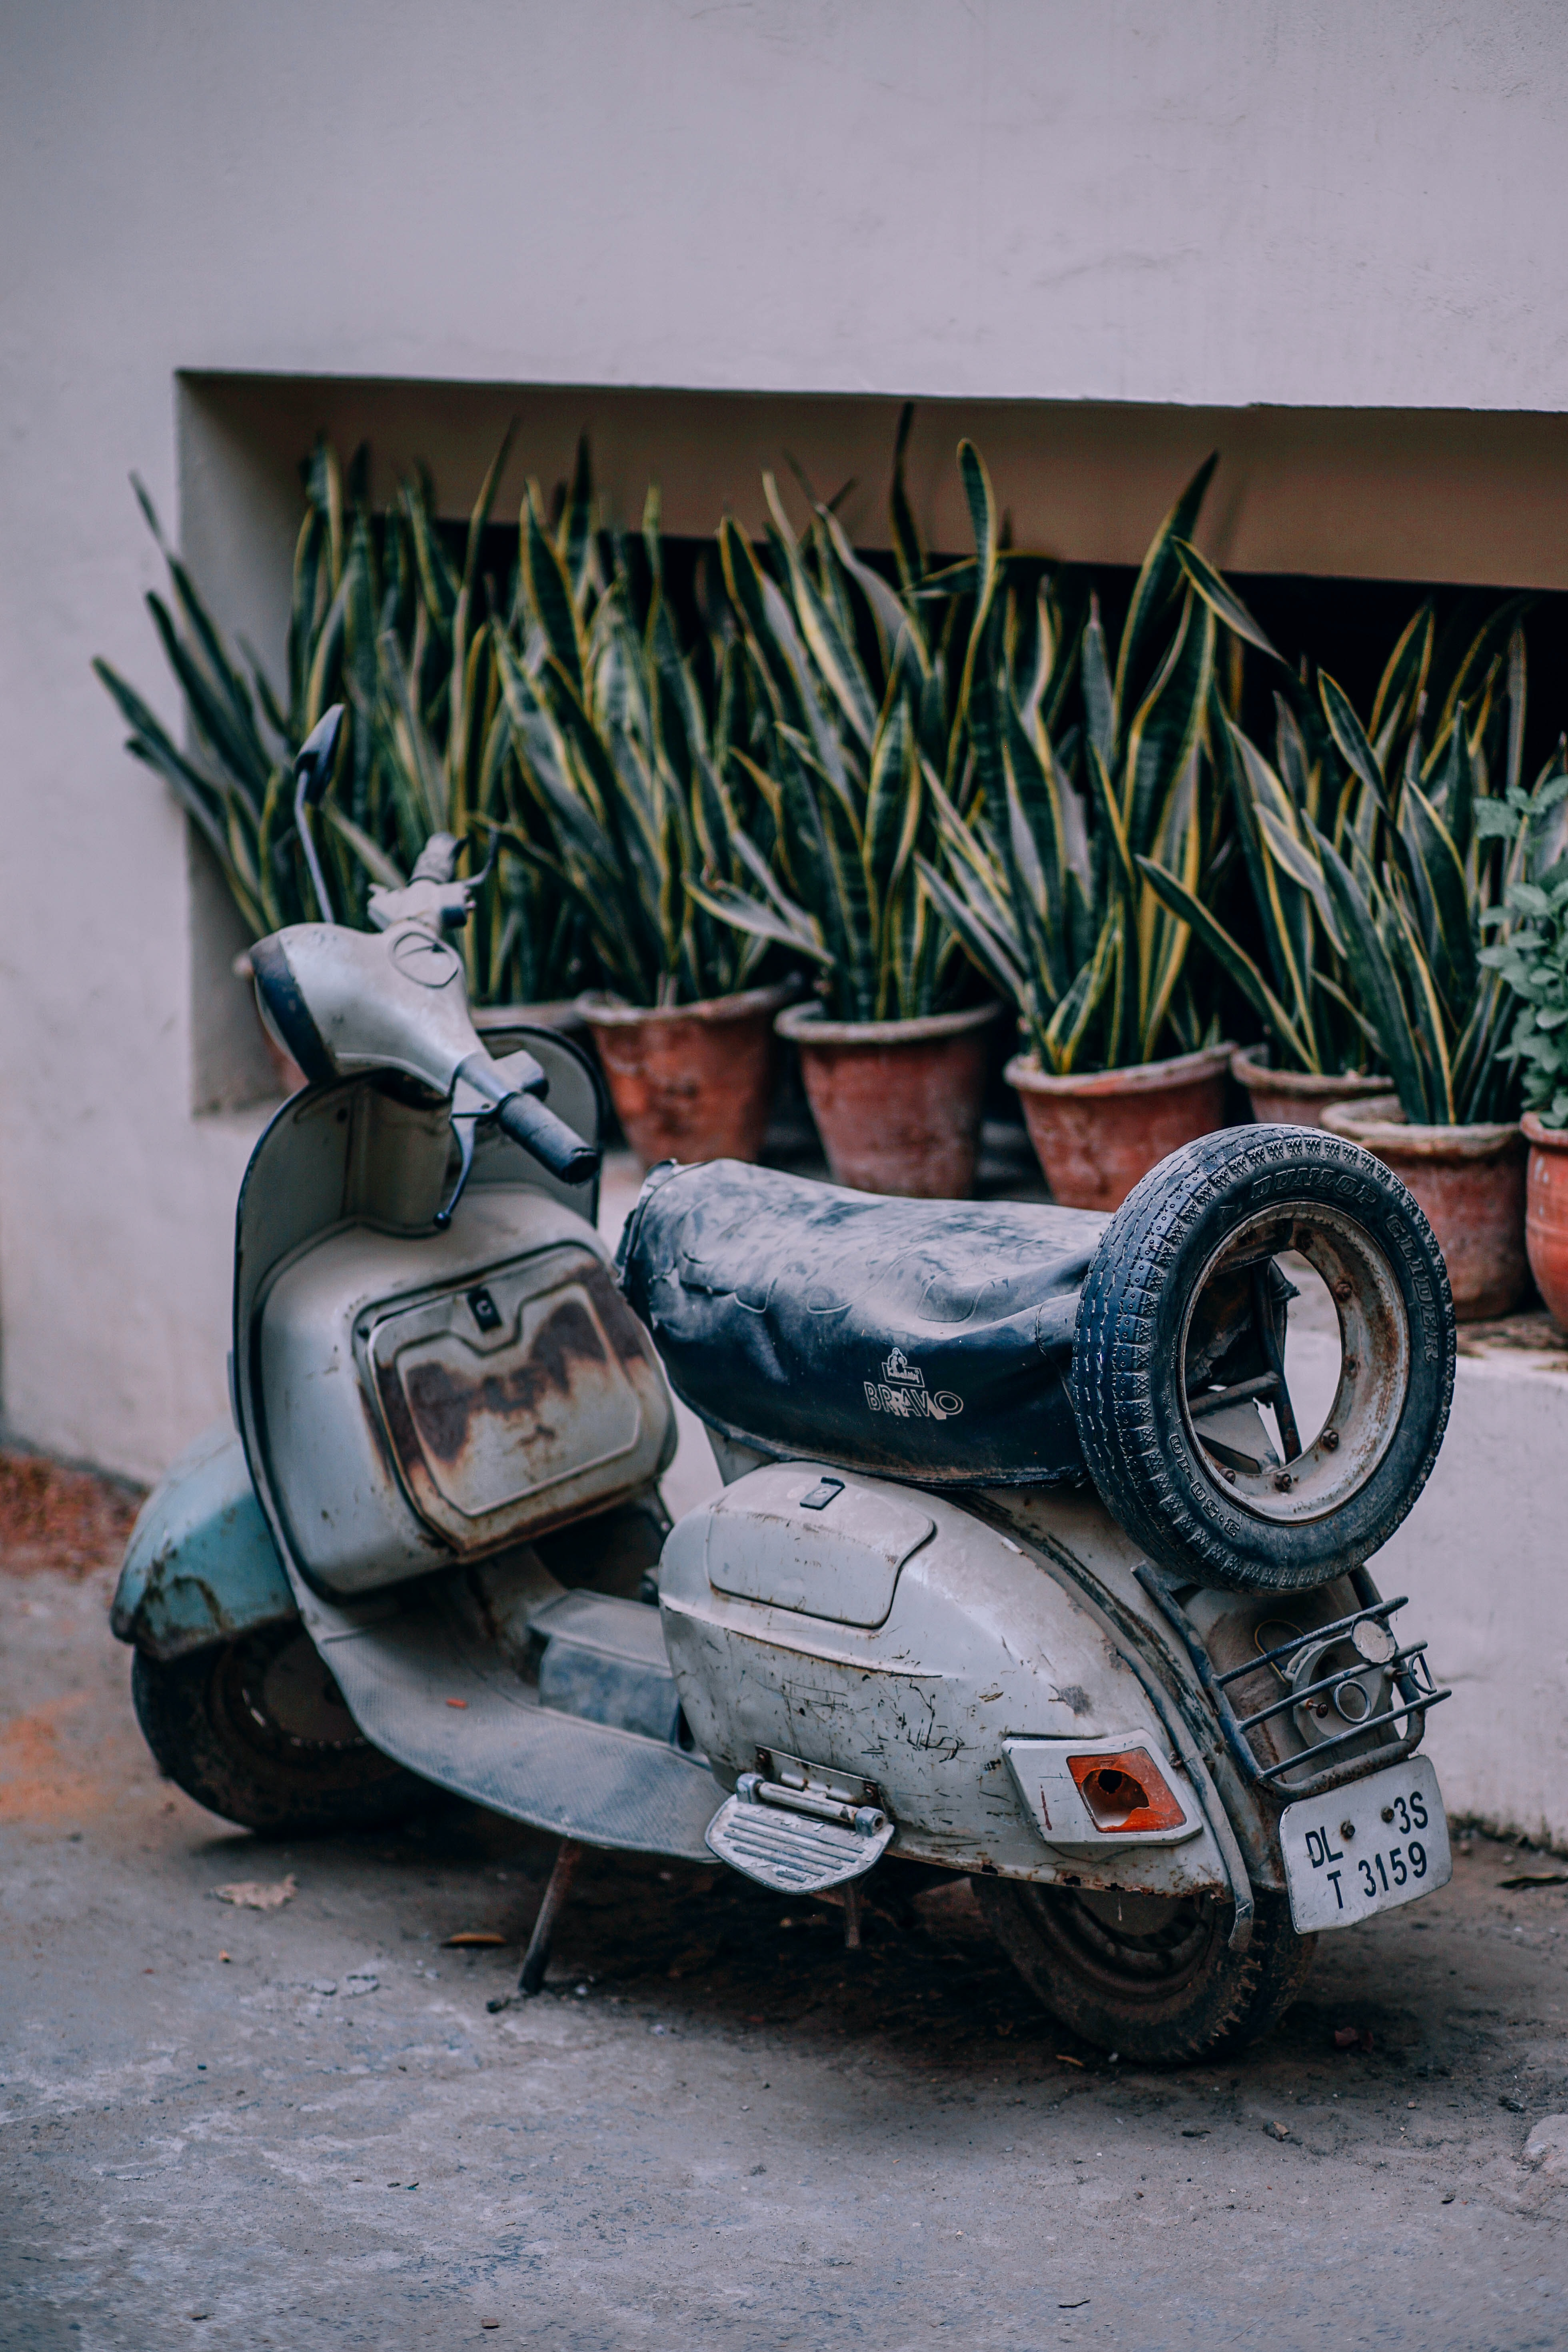 An old moped parked in the driveway.